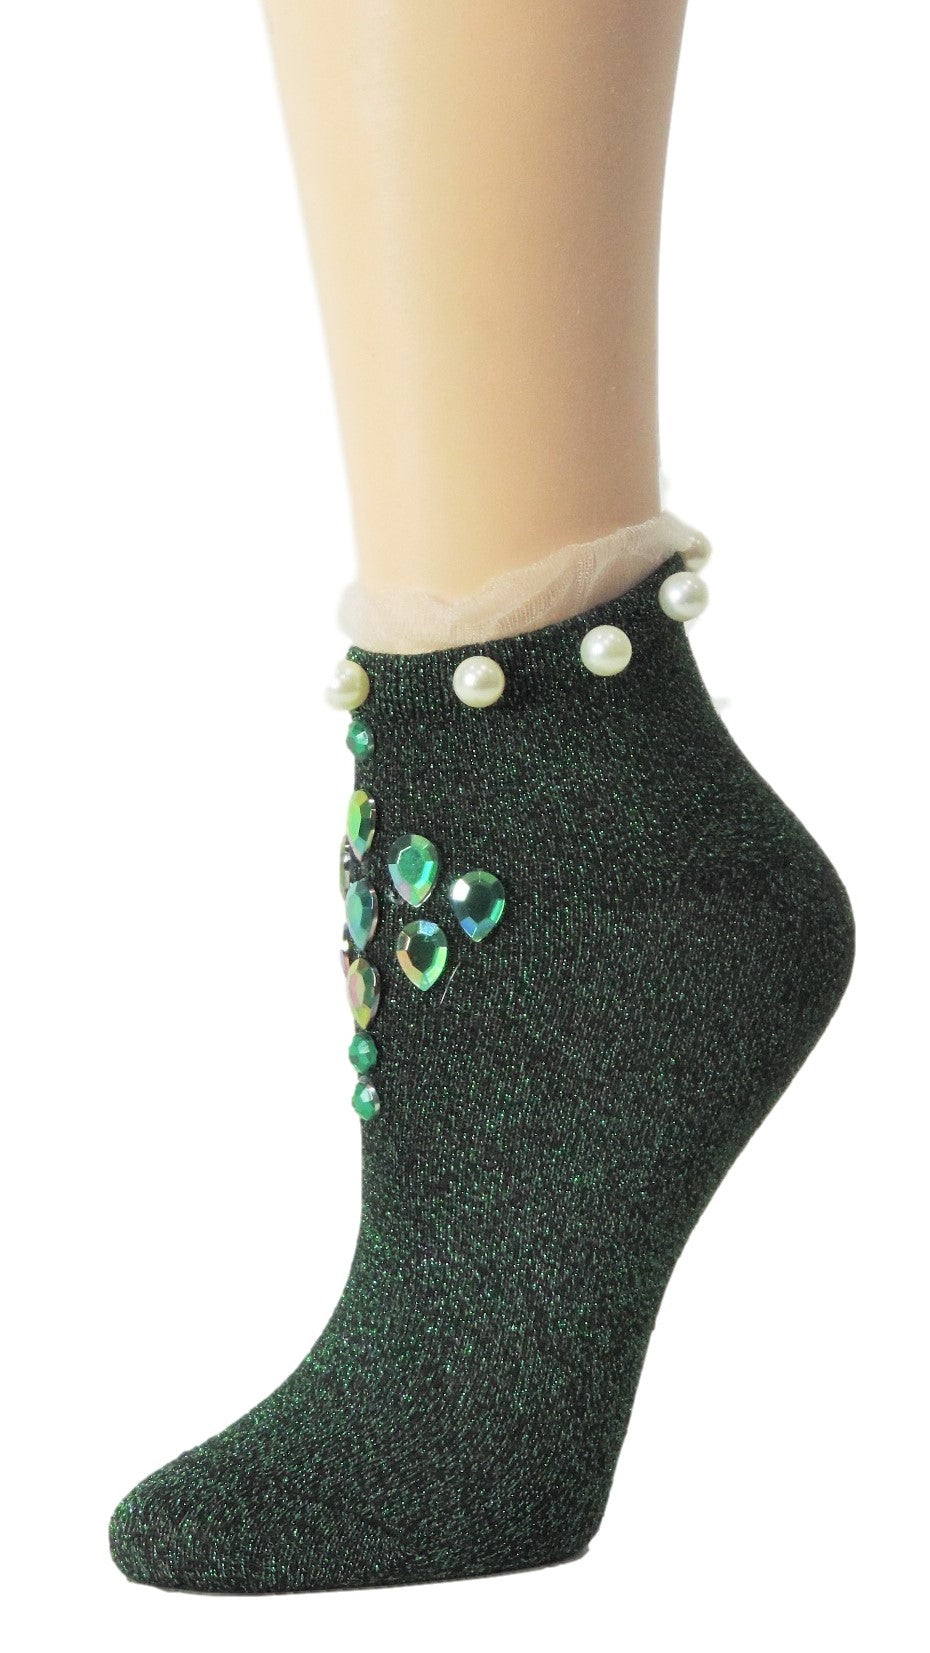 Stunning Green Custom Ankle Socks with crystals